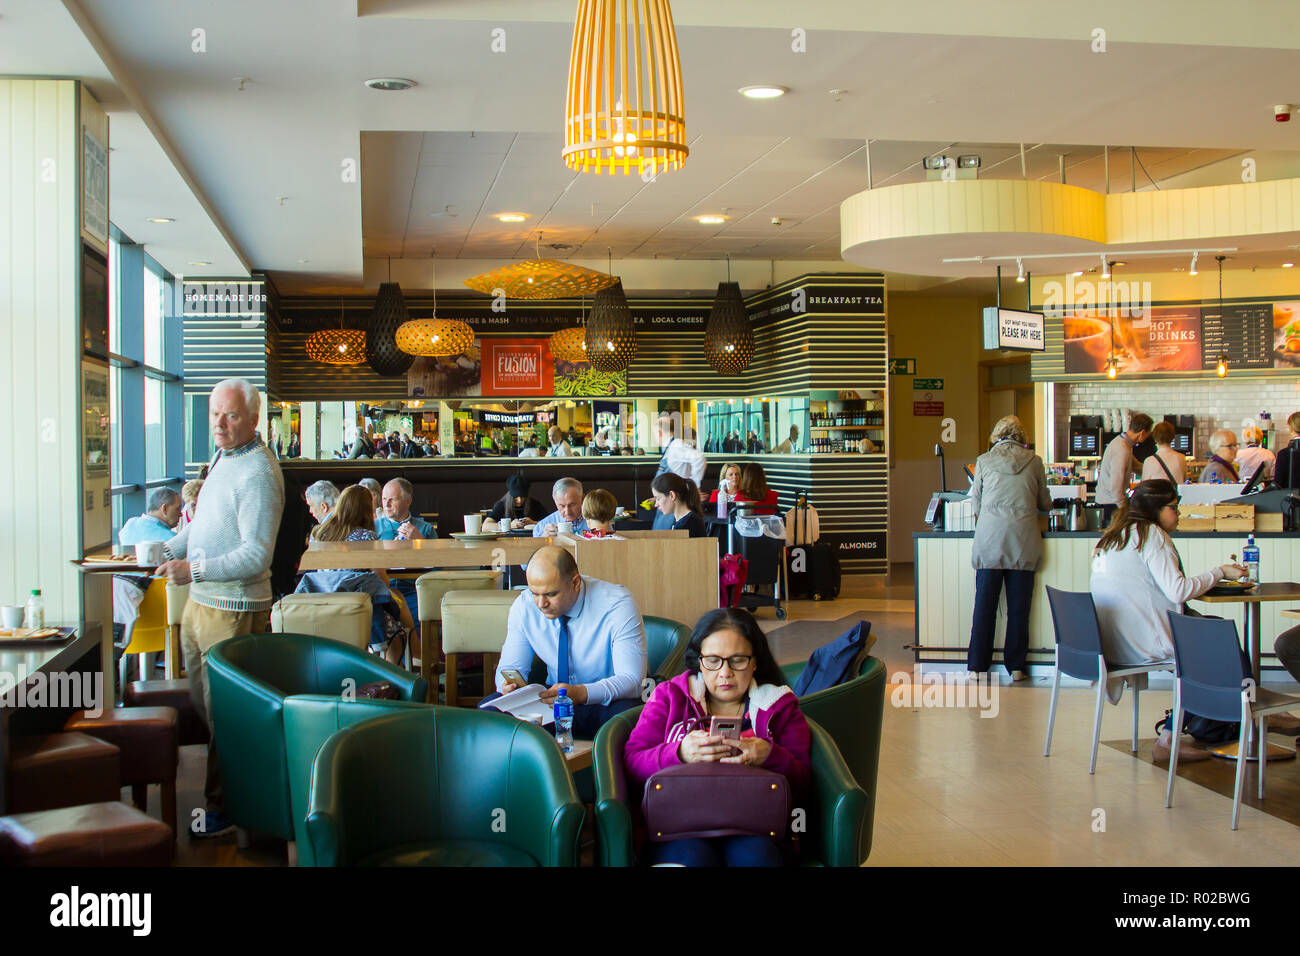 2 May 2018 Passengers taking refreshments at the Fusion Restaurant in Belfast City Airport in Northern Ireland as they await their flight departure ti - Stock Image